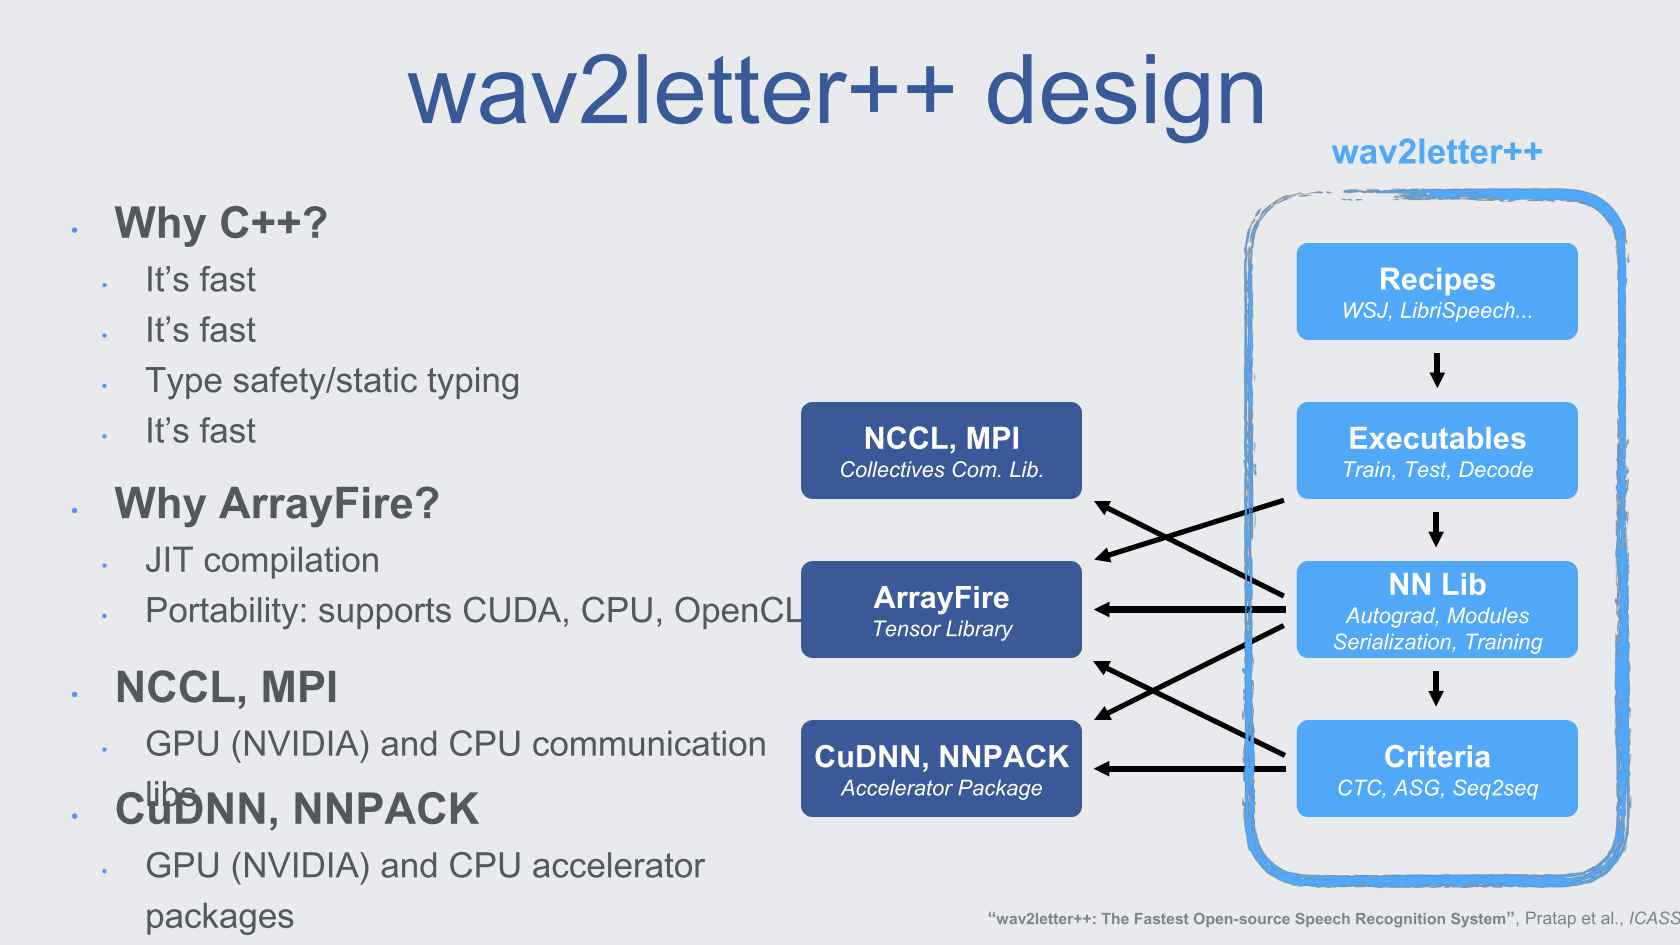 wav2letter++: Facebook's Fast Open-Source Speech Recognition